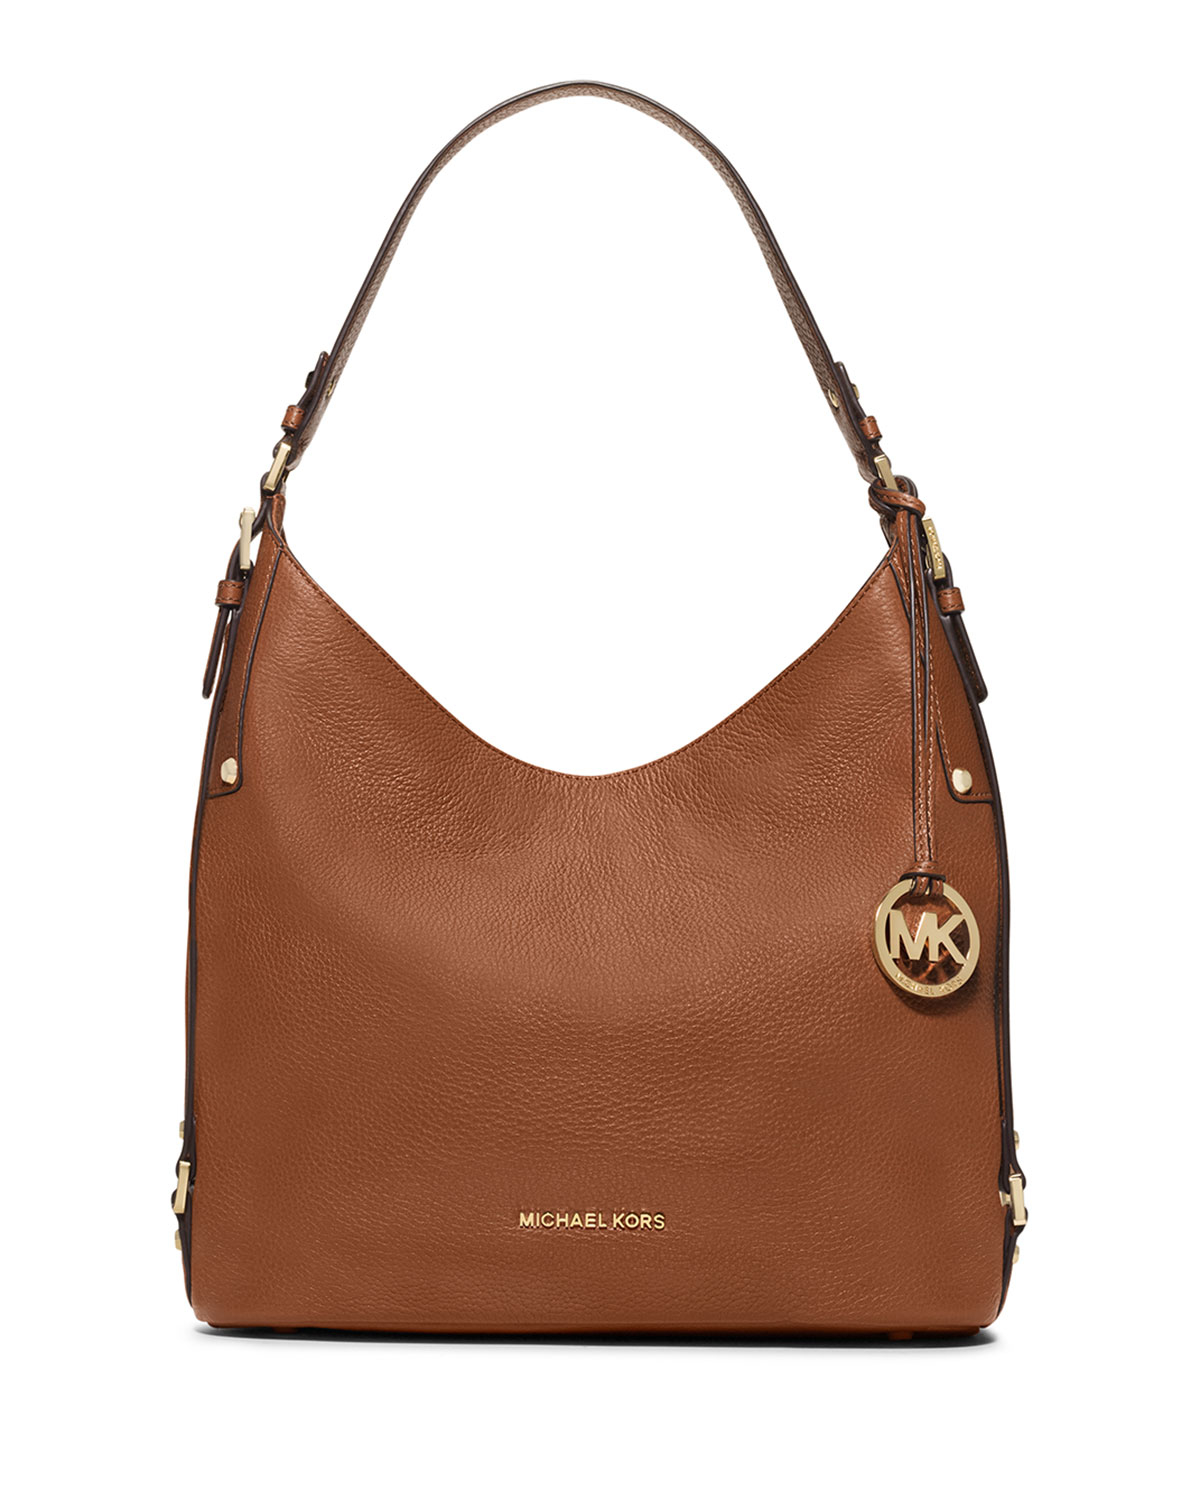 Michael michael kors Bedford Large Belted Shoulder Bag in Brown | Lyst